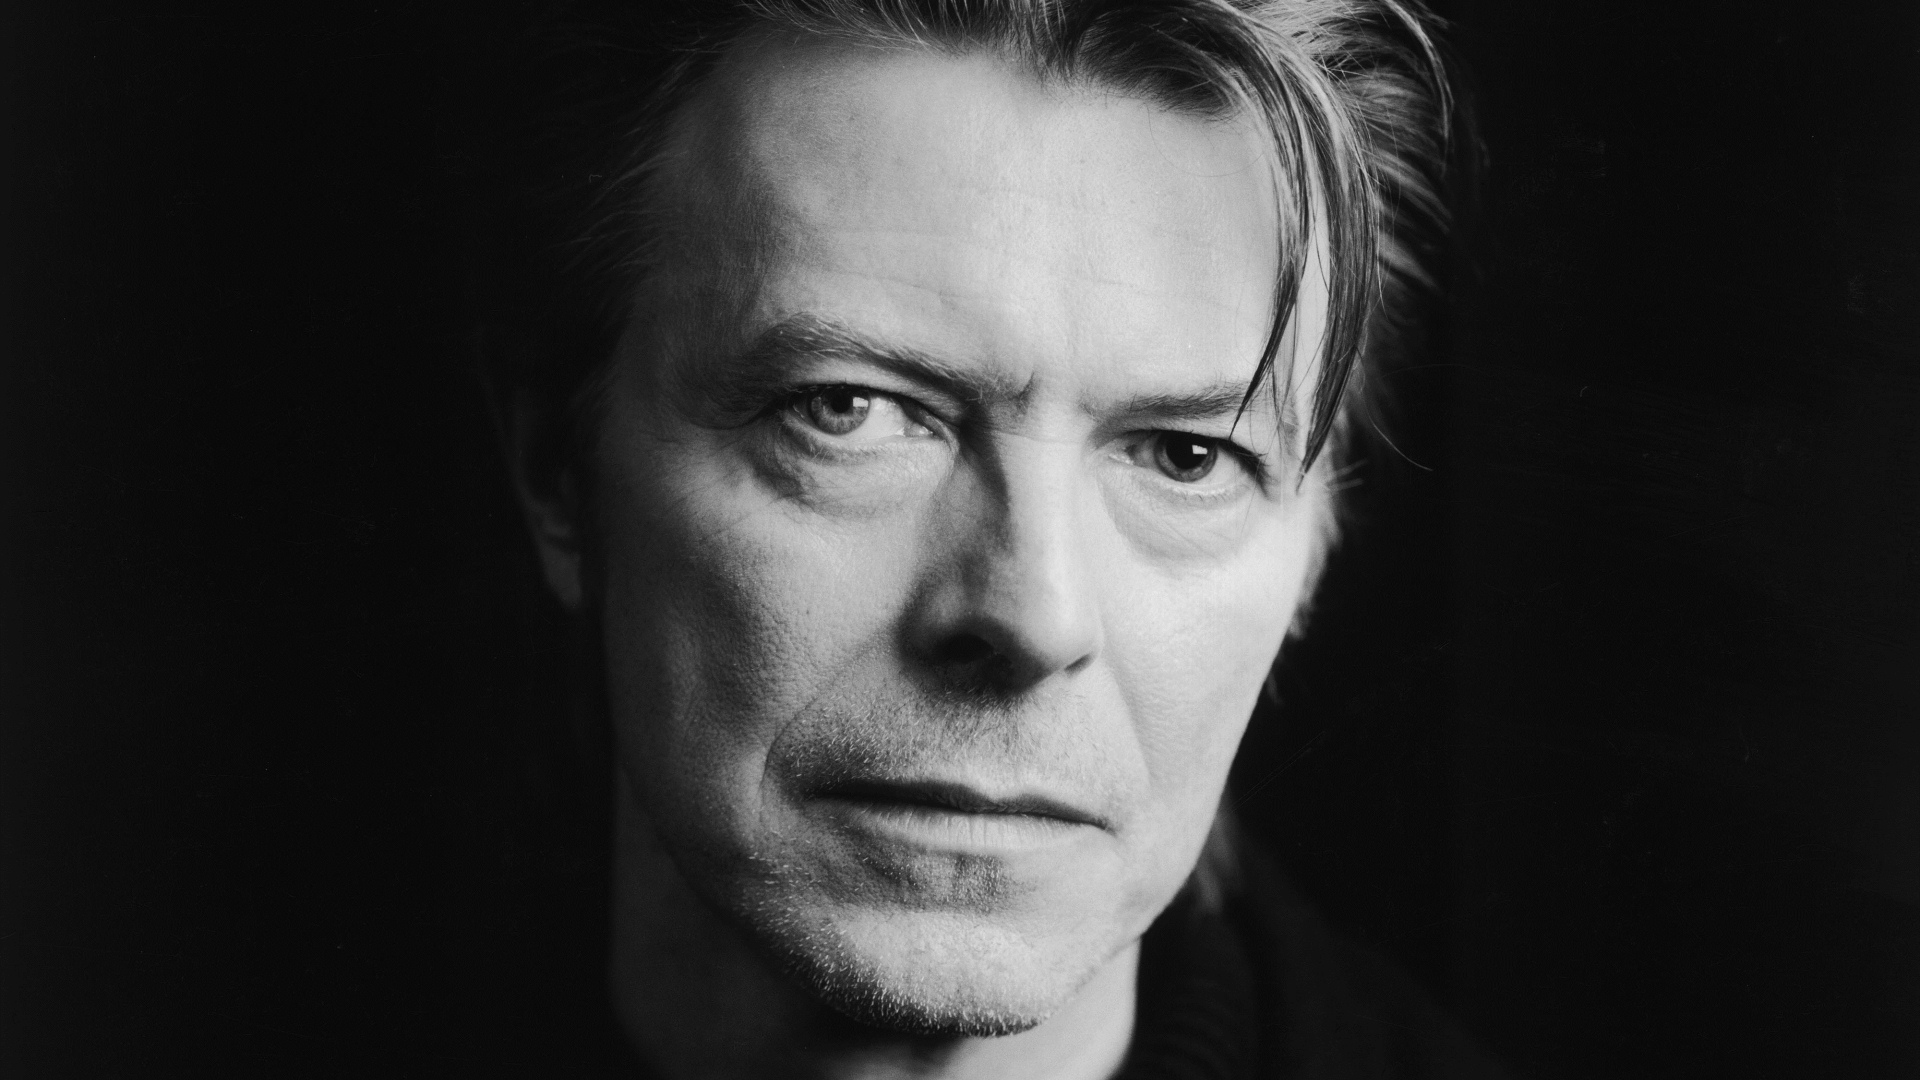 David Bowie's Lazarus musical is coming to Melbourne